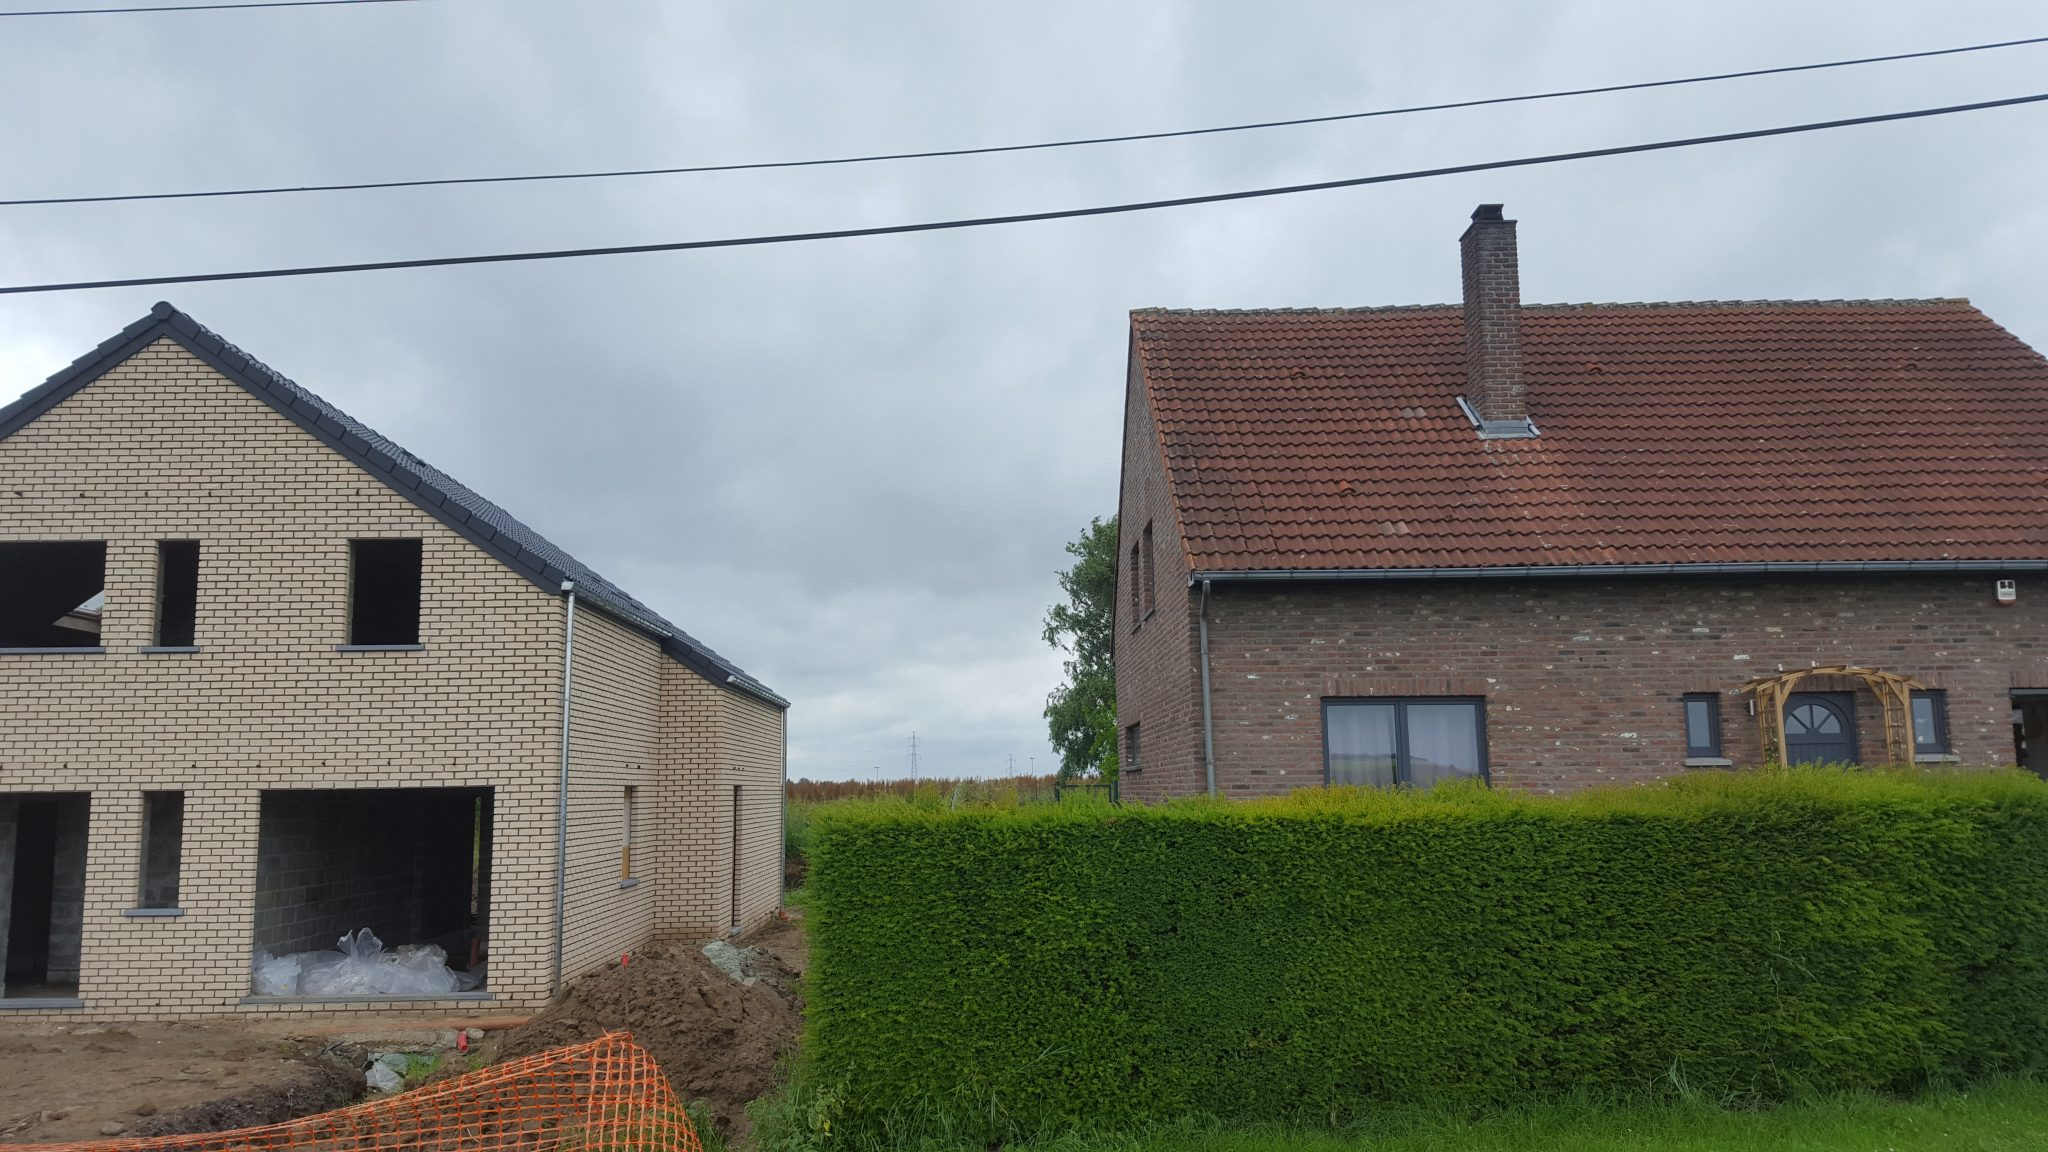 16 Charpente Toiture Construction Villa Charleroi Ic